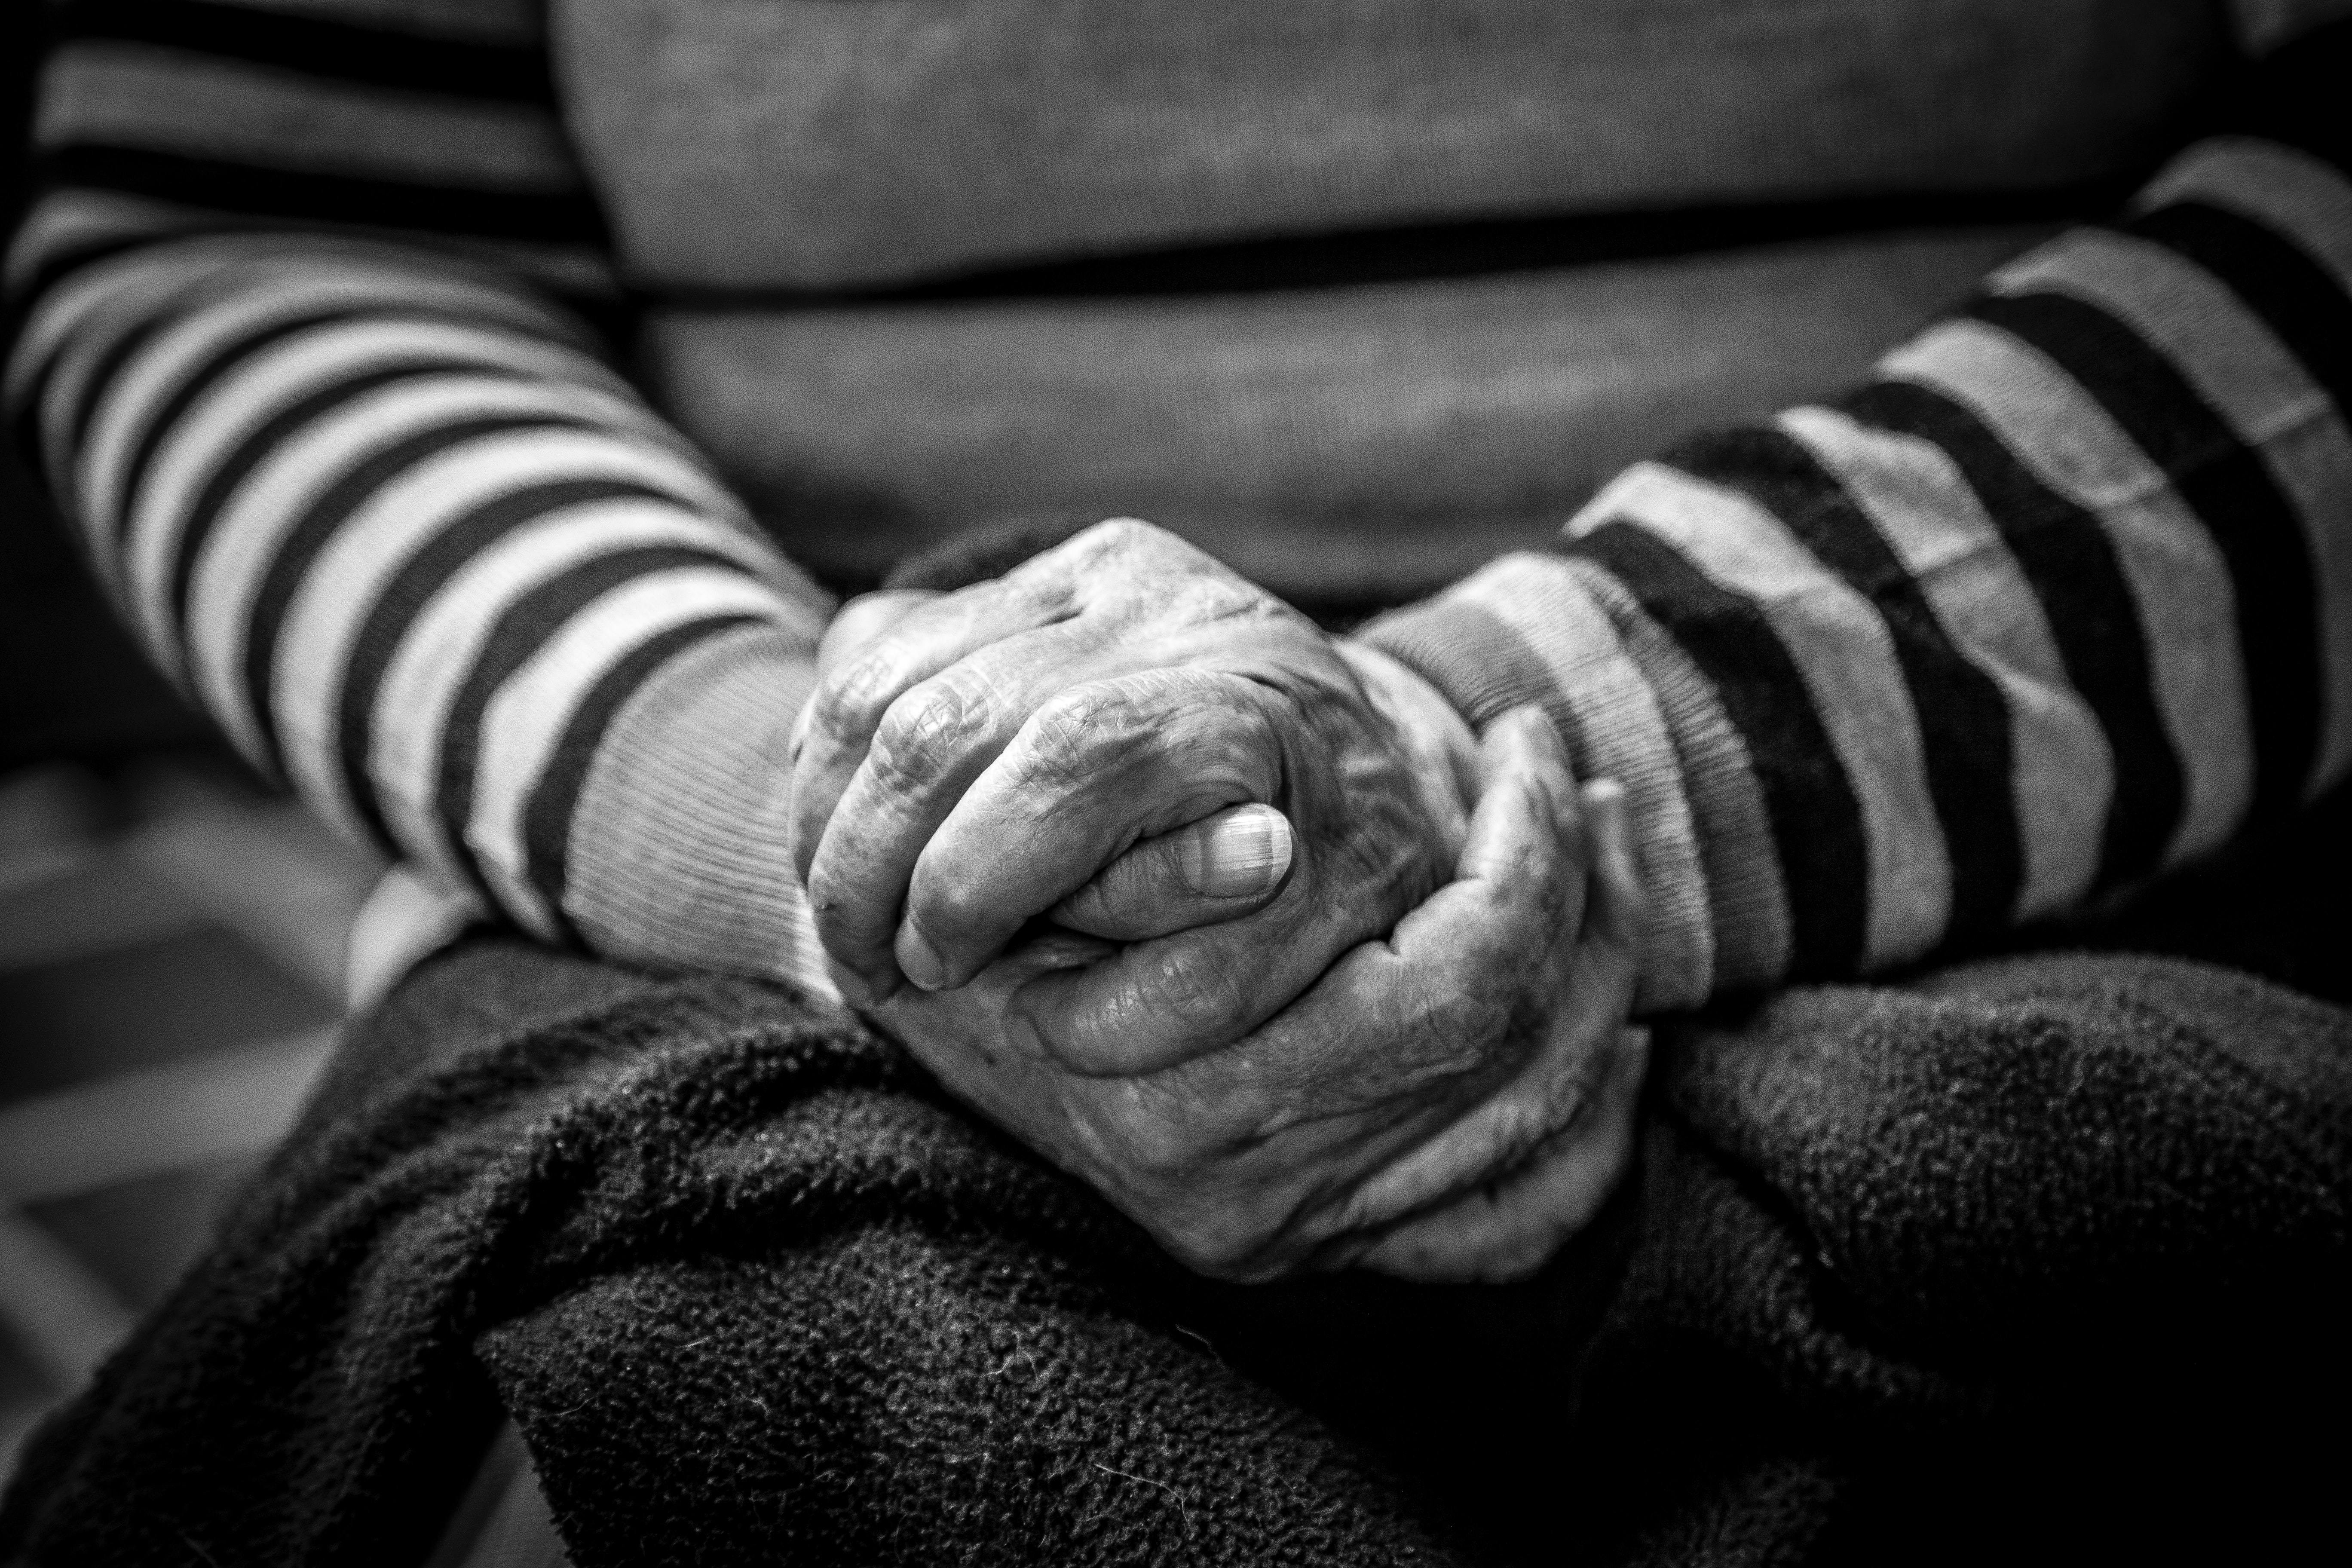 ageing old population death decline loss family relationships depression suffering elderly retirement care home emotions bereavement spouse